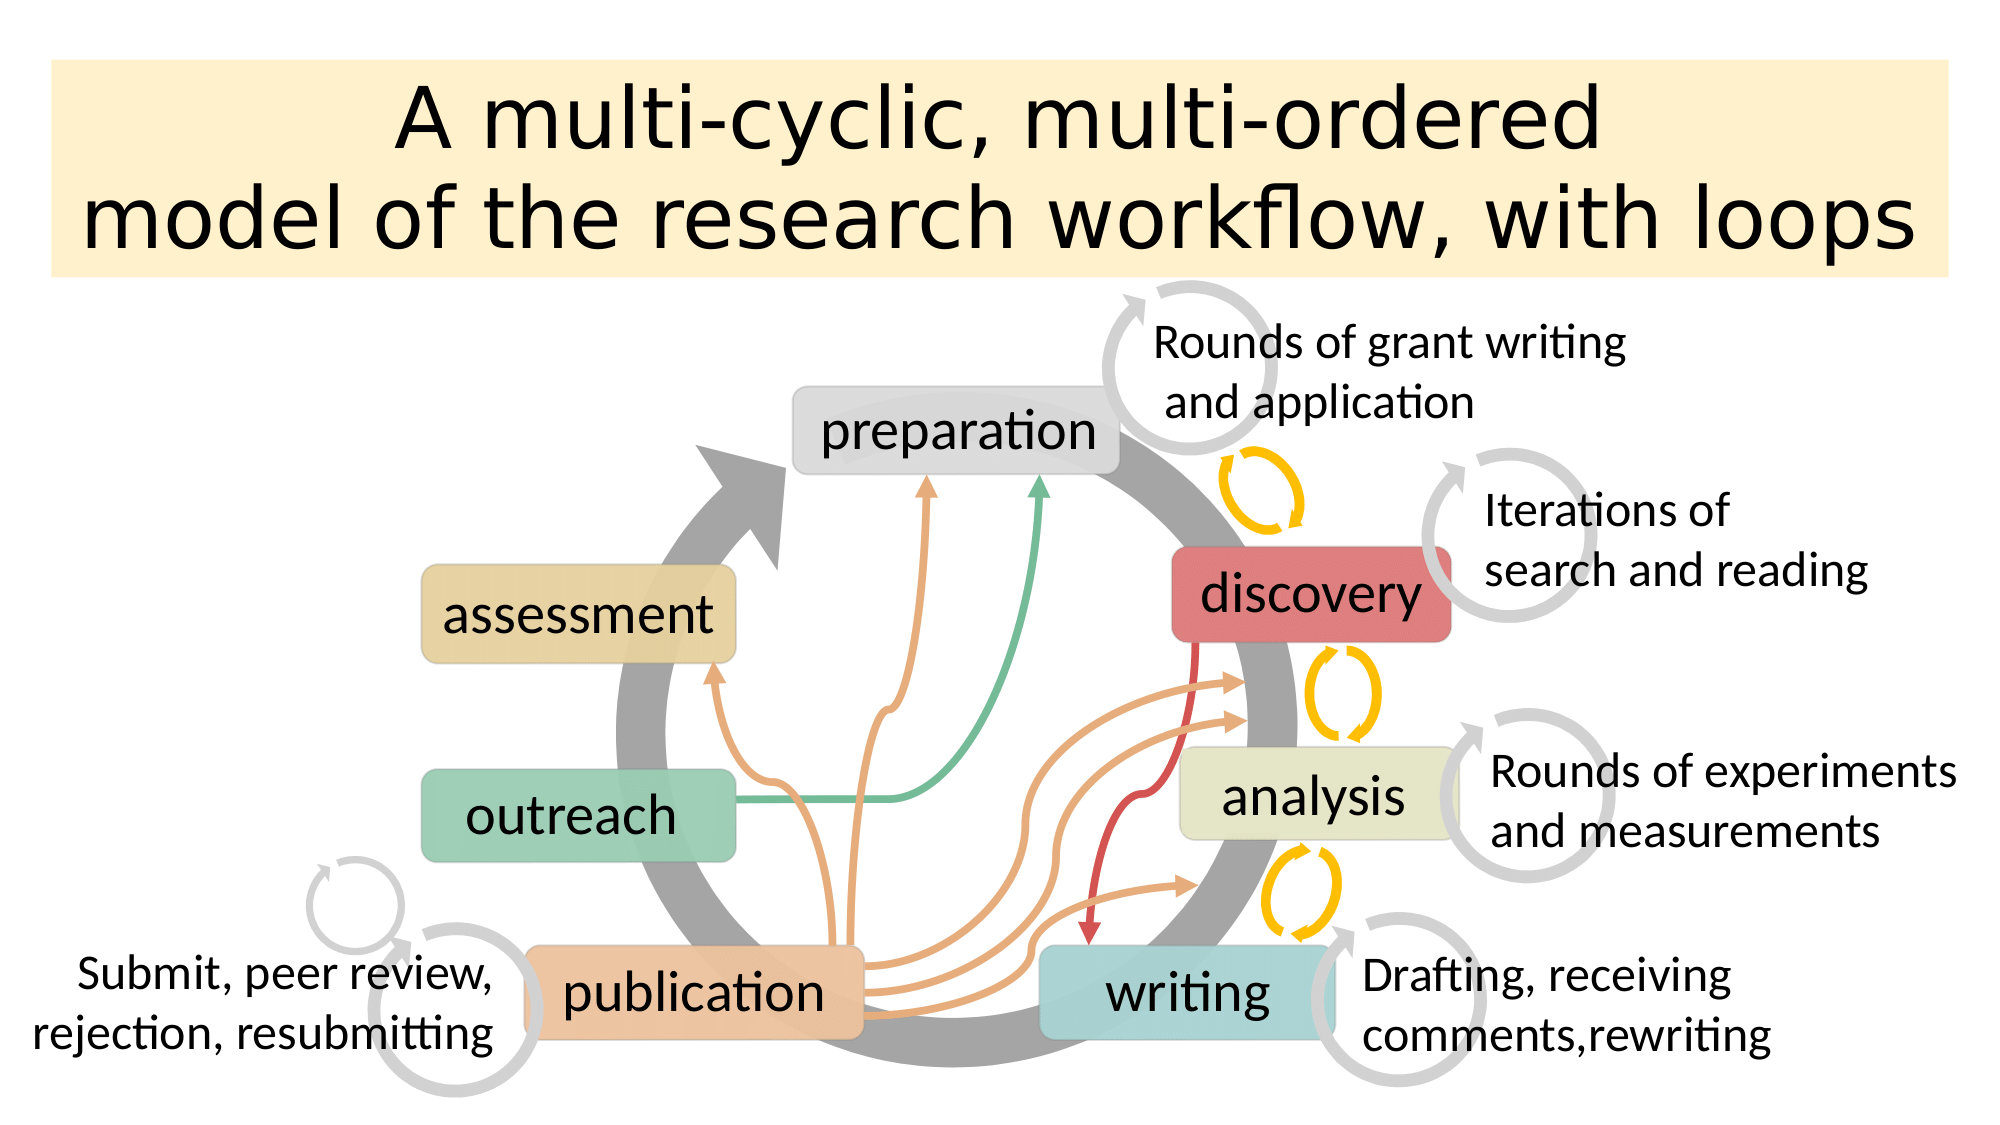 ../_images/multicycle_workflow.png